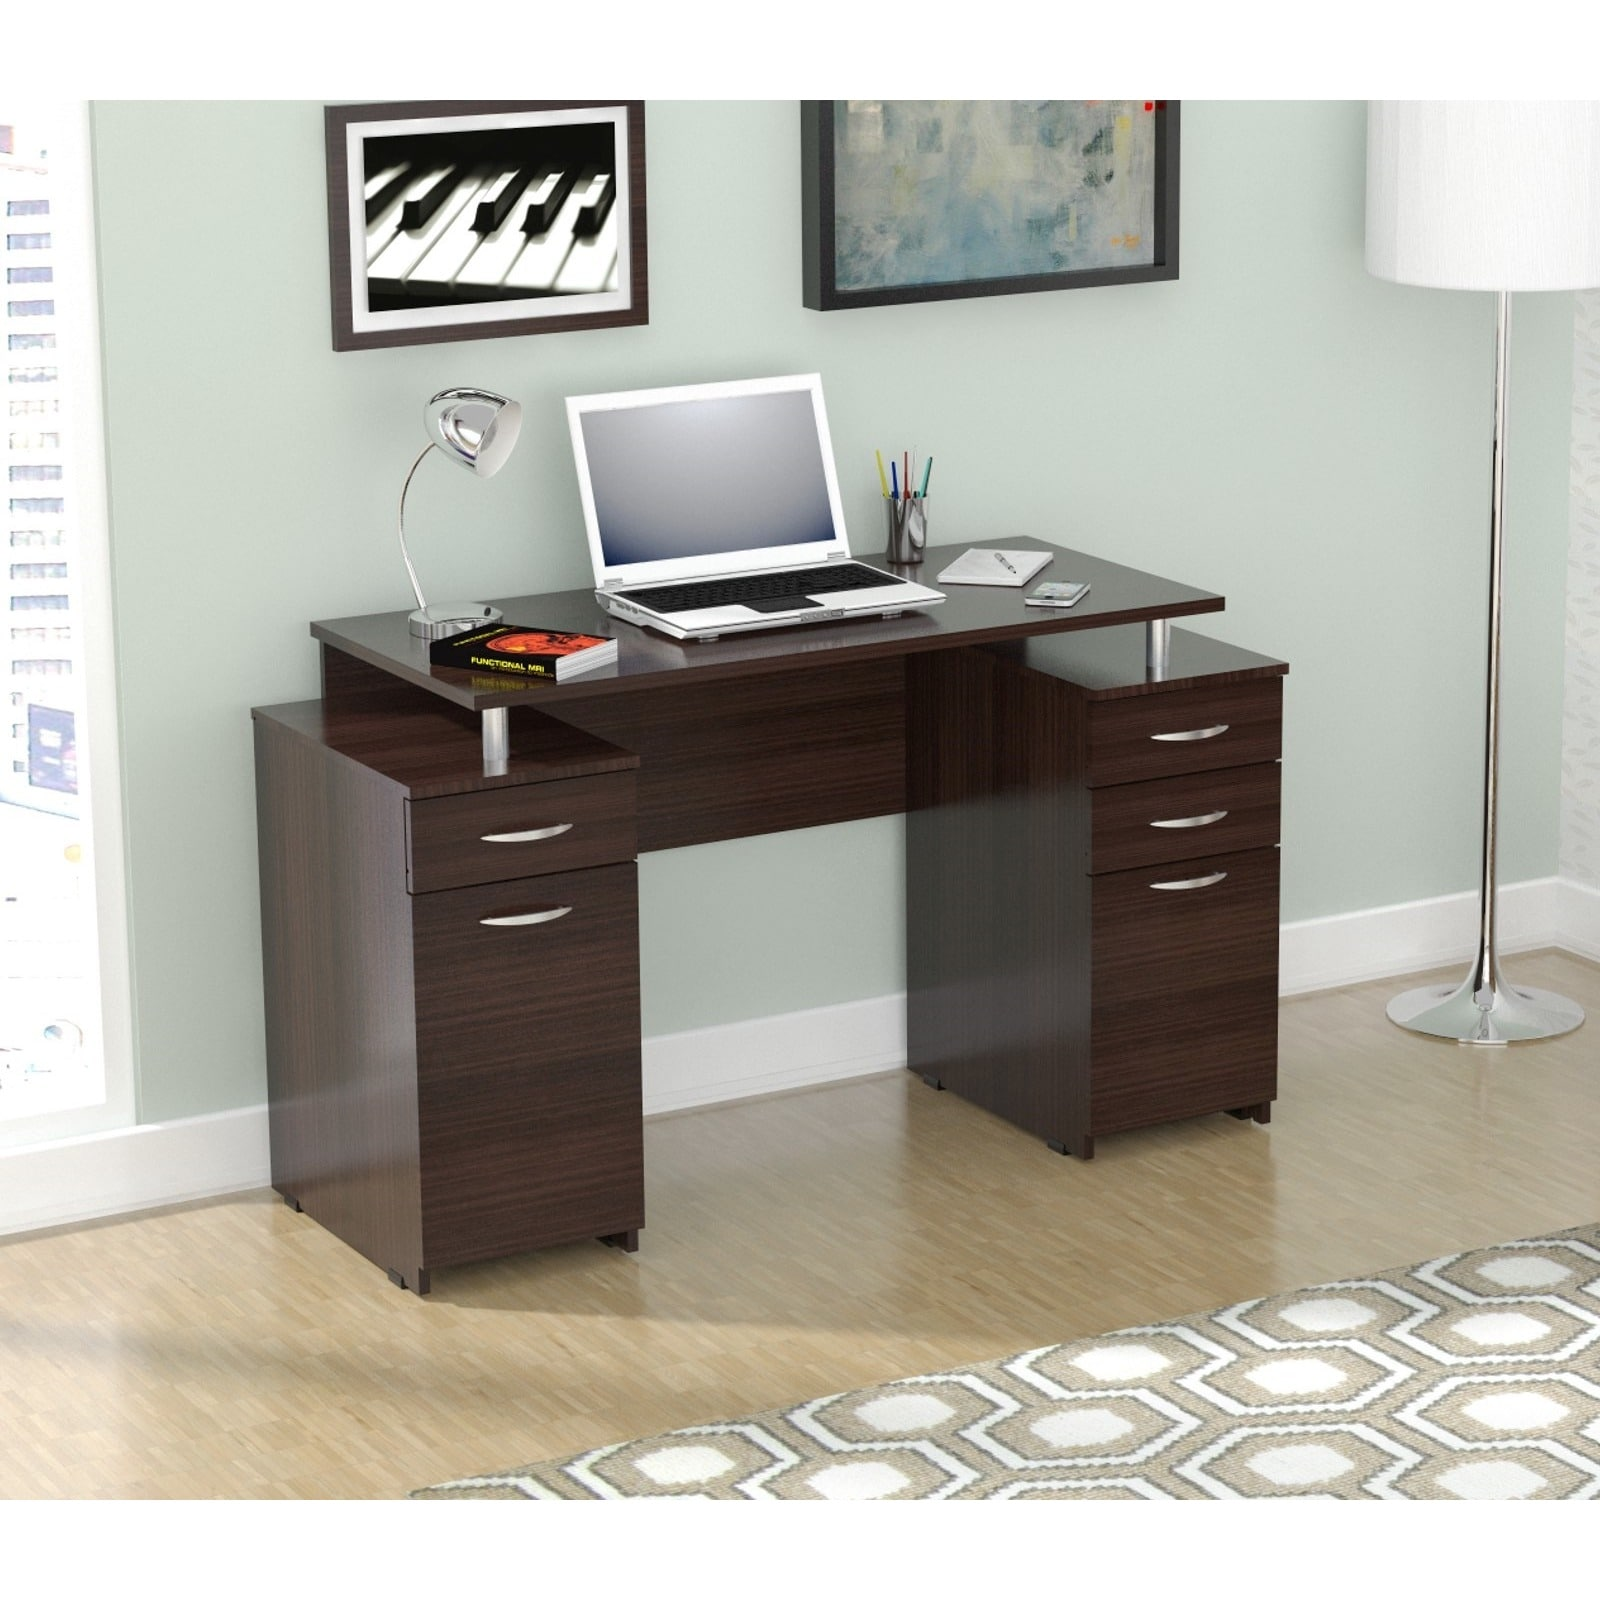 Download Executive Style Computer Desk Pdf Fixed Base